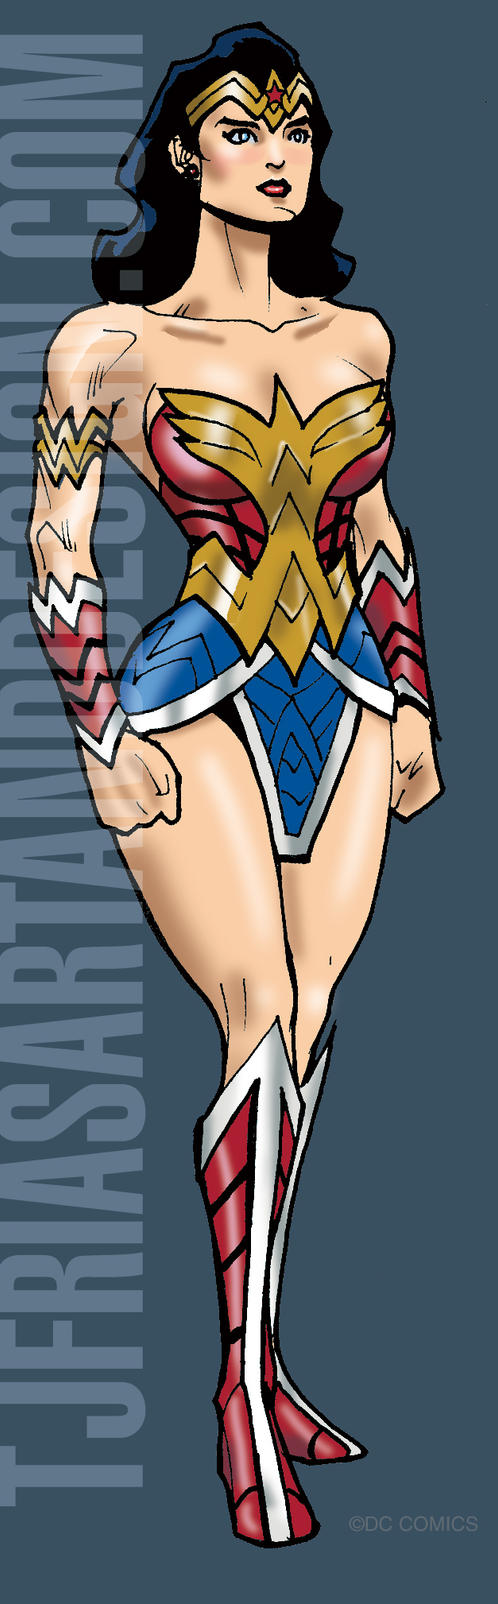 Wonder Woman Redesign by guinnessyde